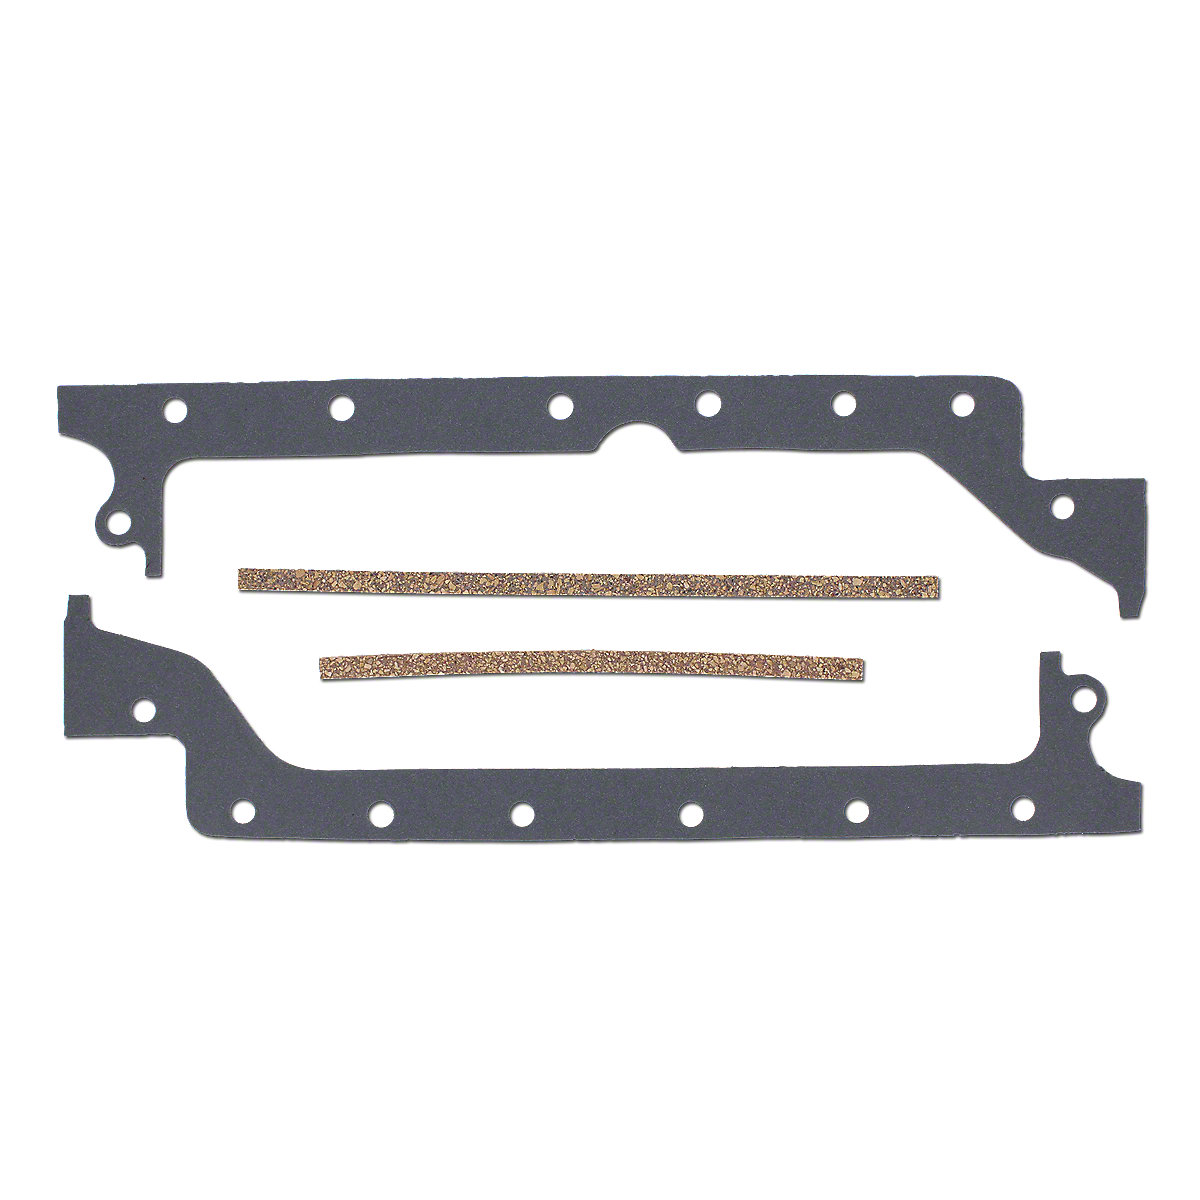 Oil Pan Gasket For Massey Ferguson: Fits: 35, MF35, MF35 Turf, MF35X, 50, 133, 135, 148, 150, 154, 154-4, 230, 231, 233, 235, 240, 240.